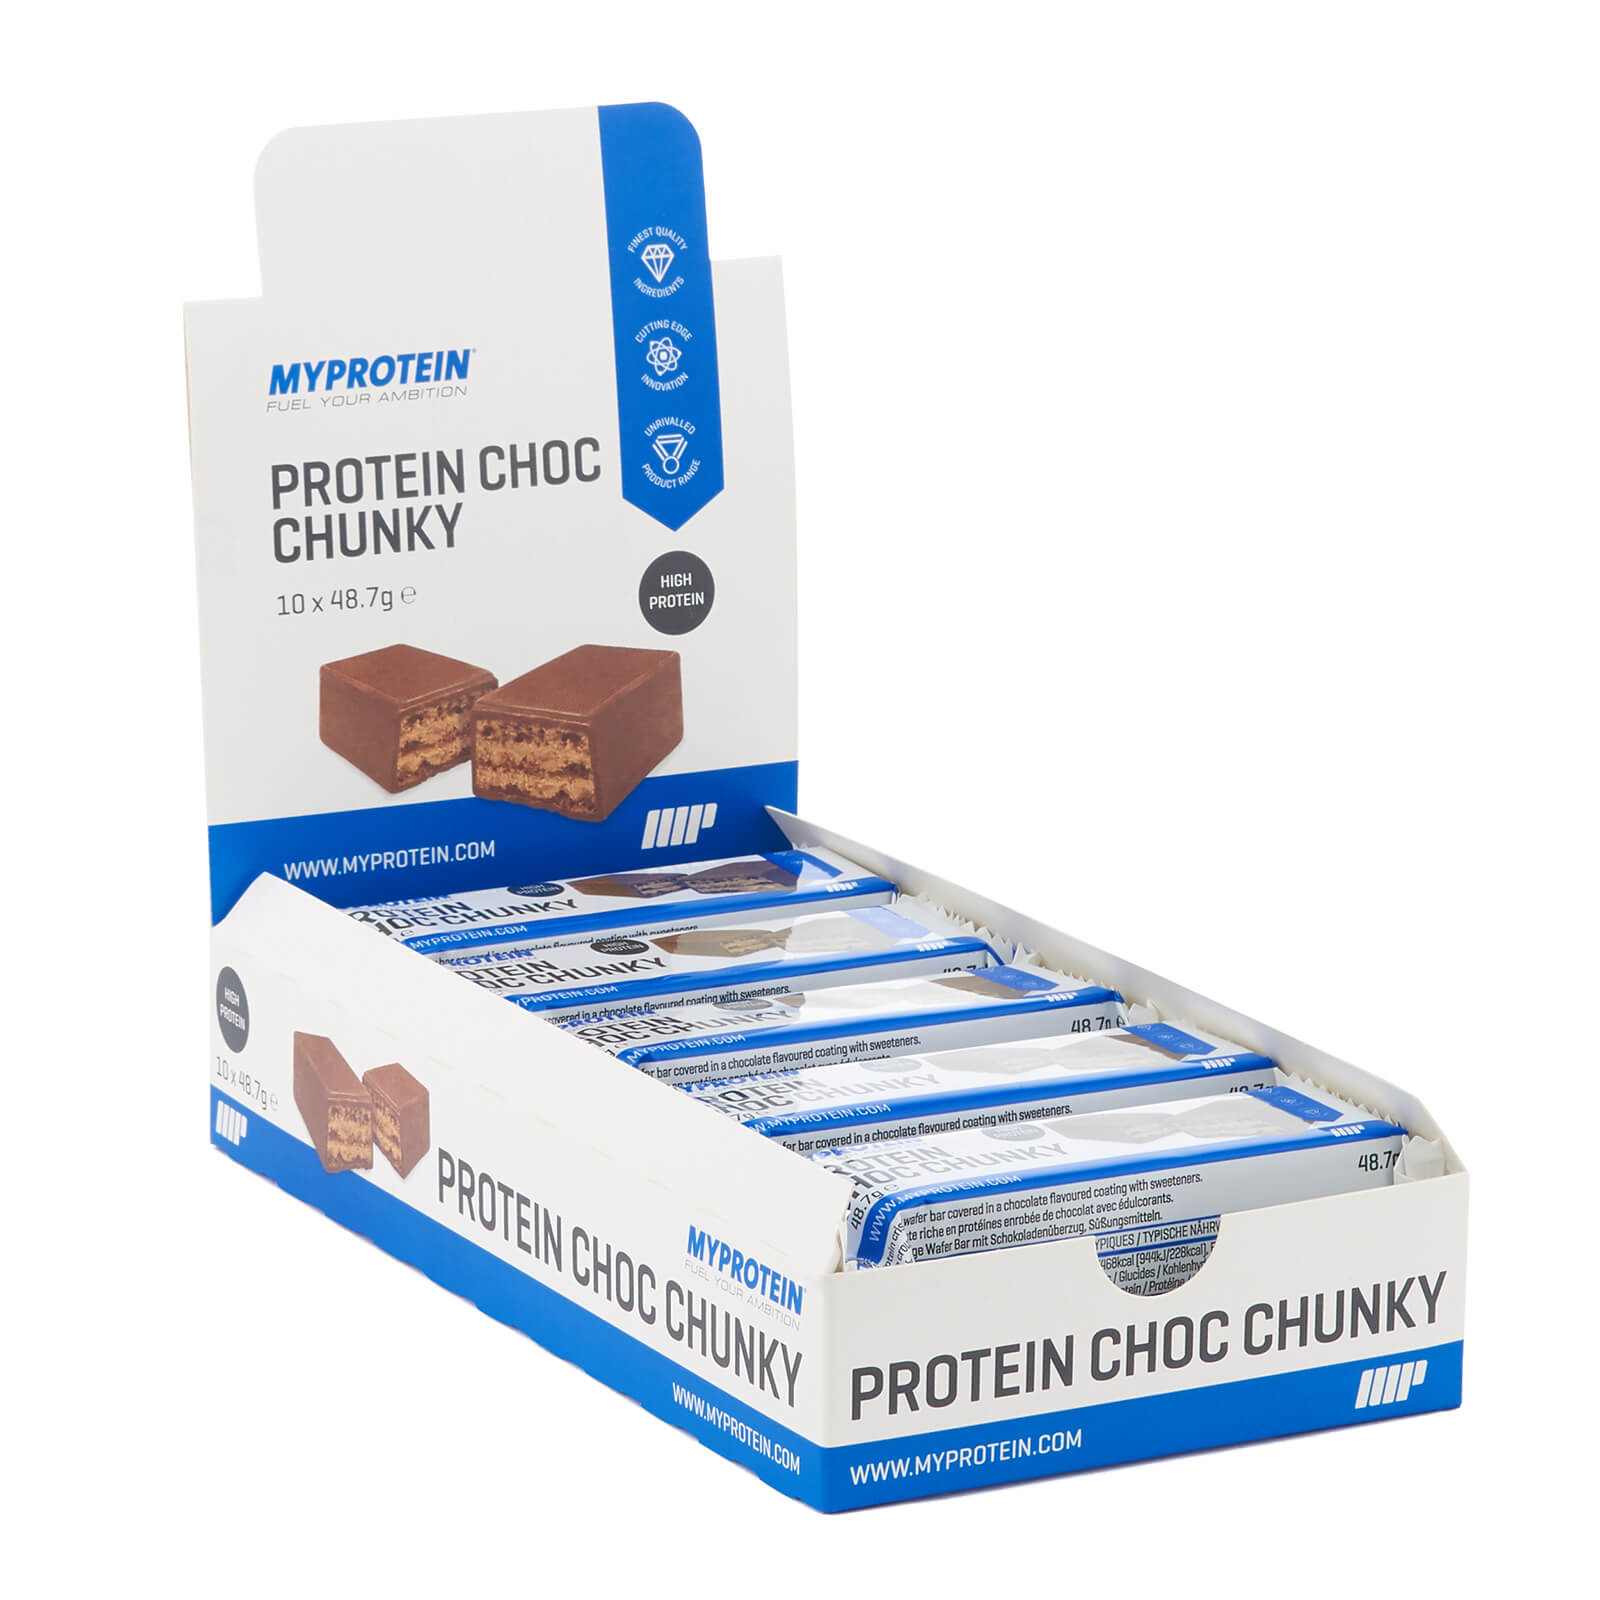 Protein Choc Chunky